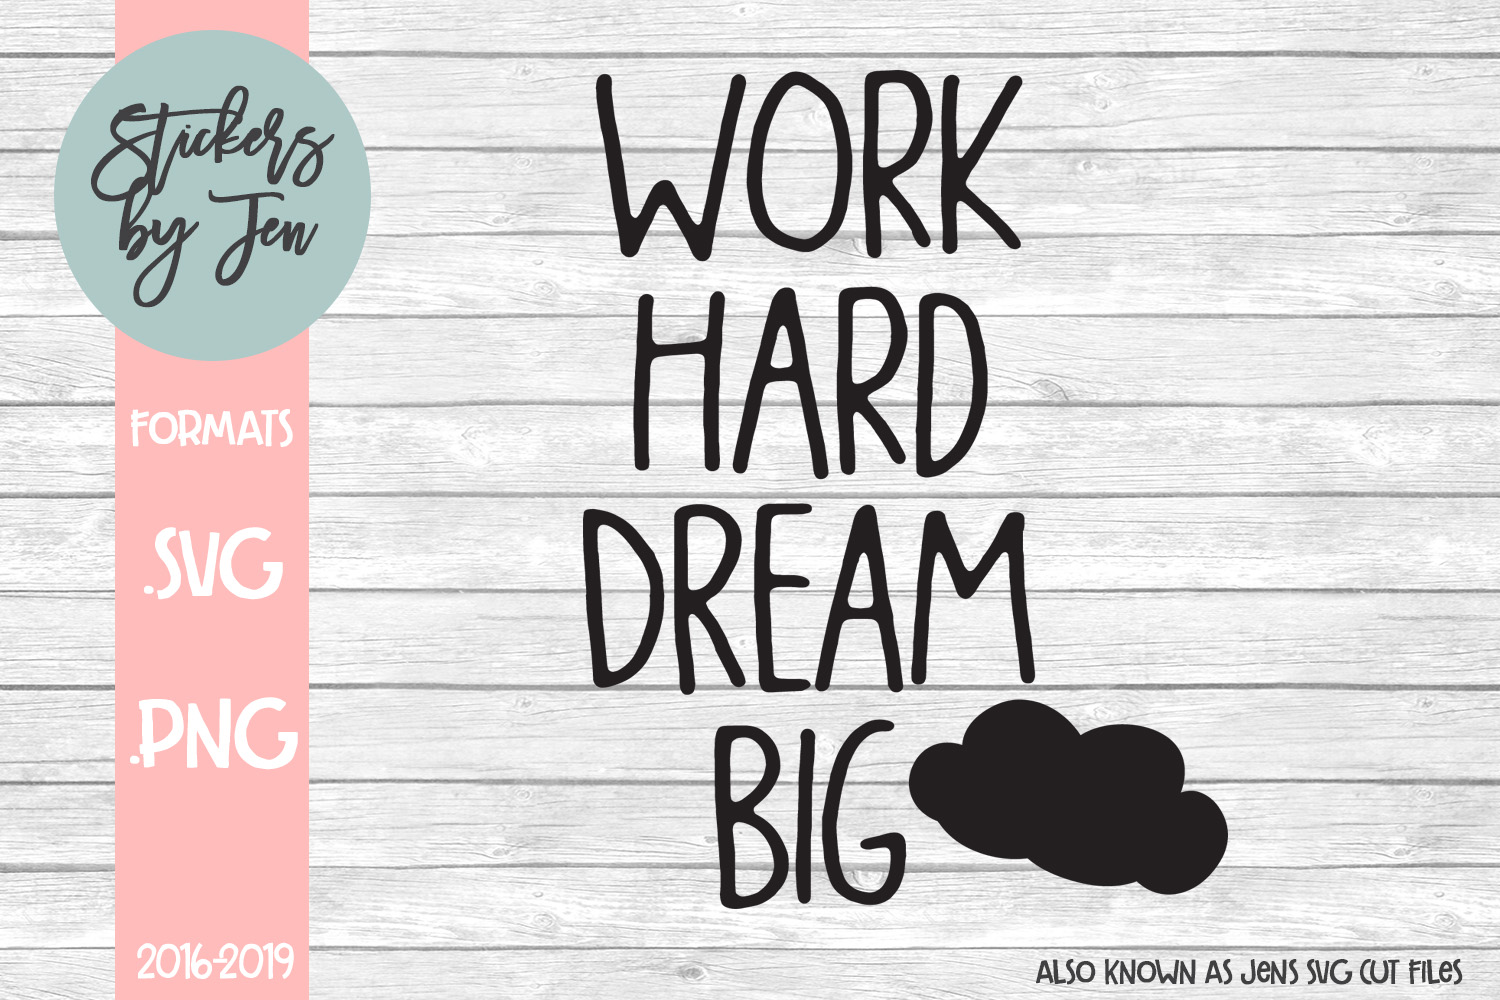 Download Free Work Hard Dream Big Svg Graphic By Stickers By Jennifer for Cricut Explore, Silhouette and other cutting machines.